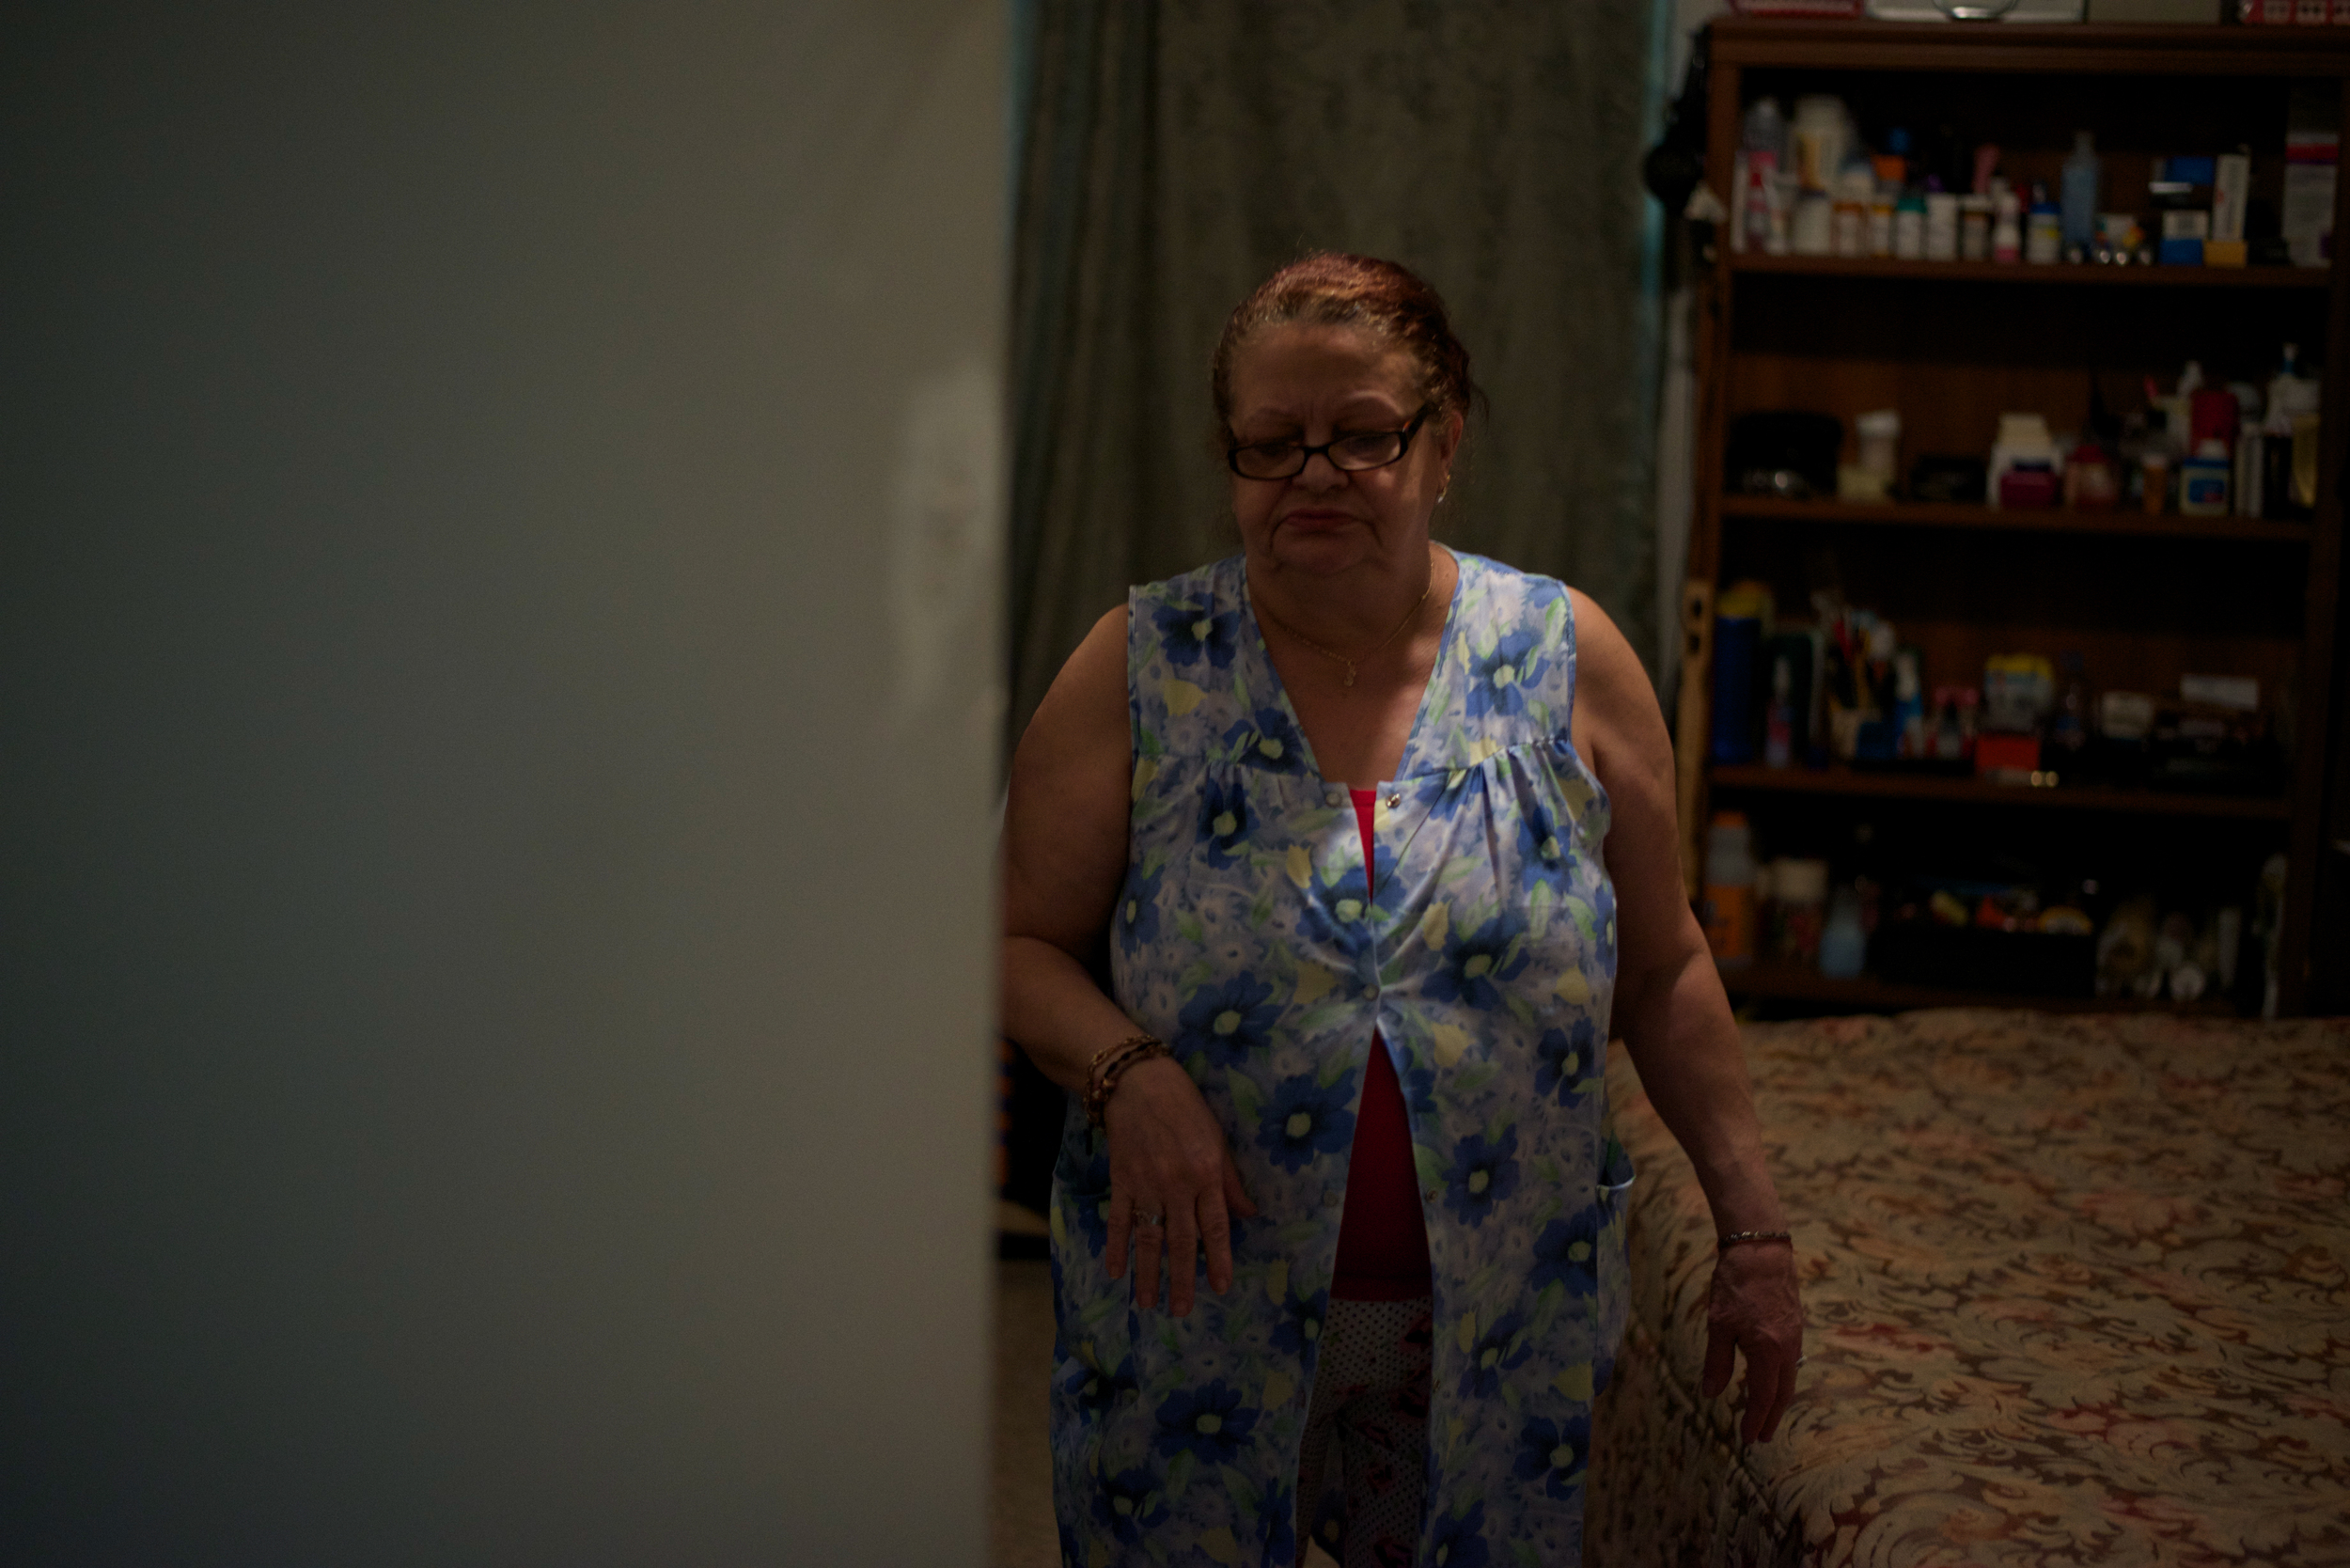 Blanca Sierra, the mother of Denis Reyes, leaves her son's bedroom after looking through some of her son's belongings.